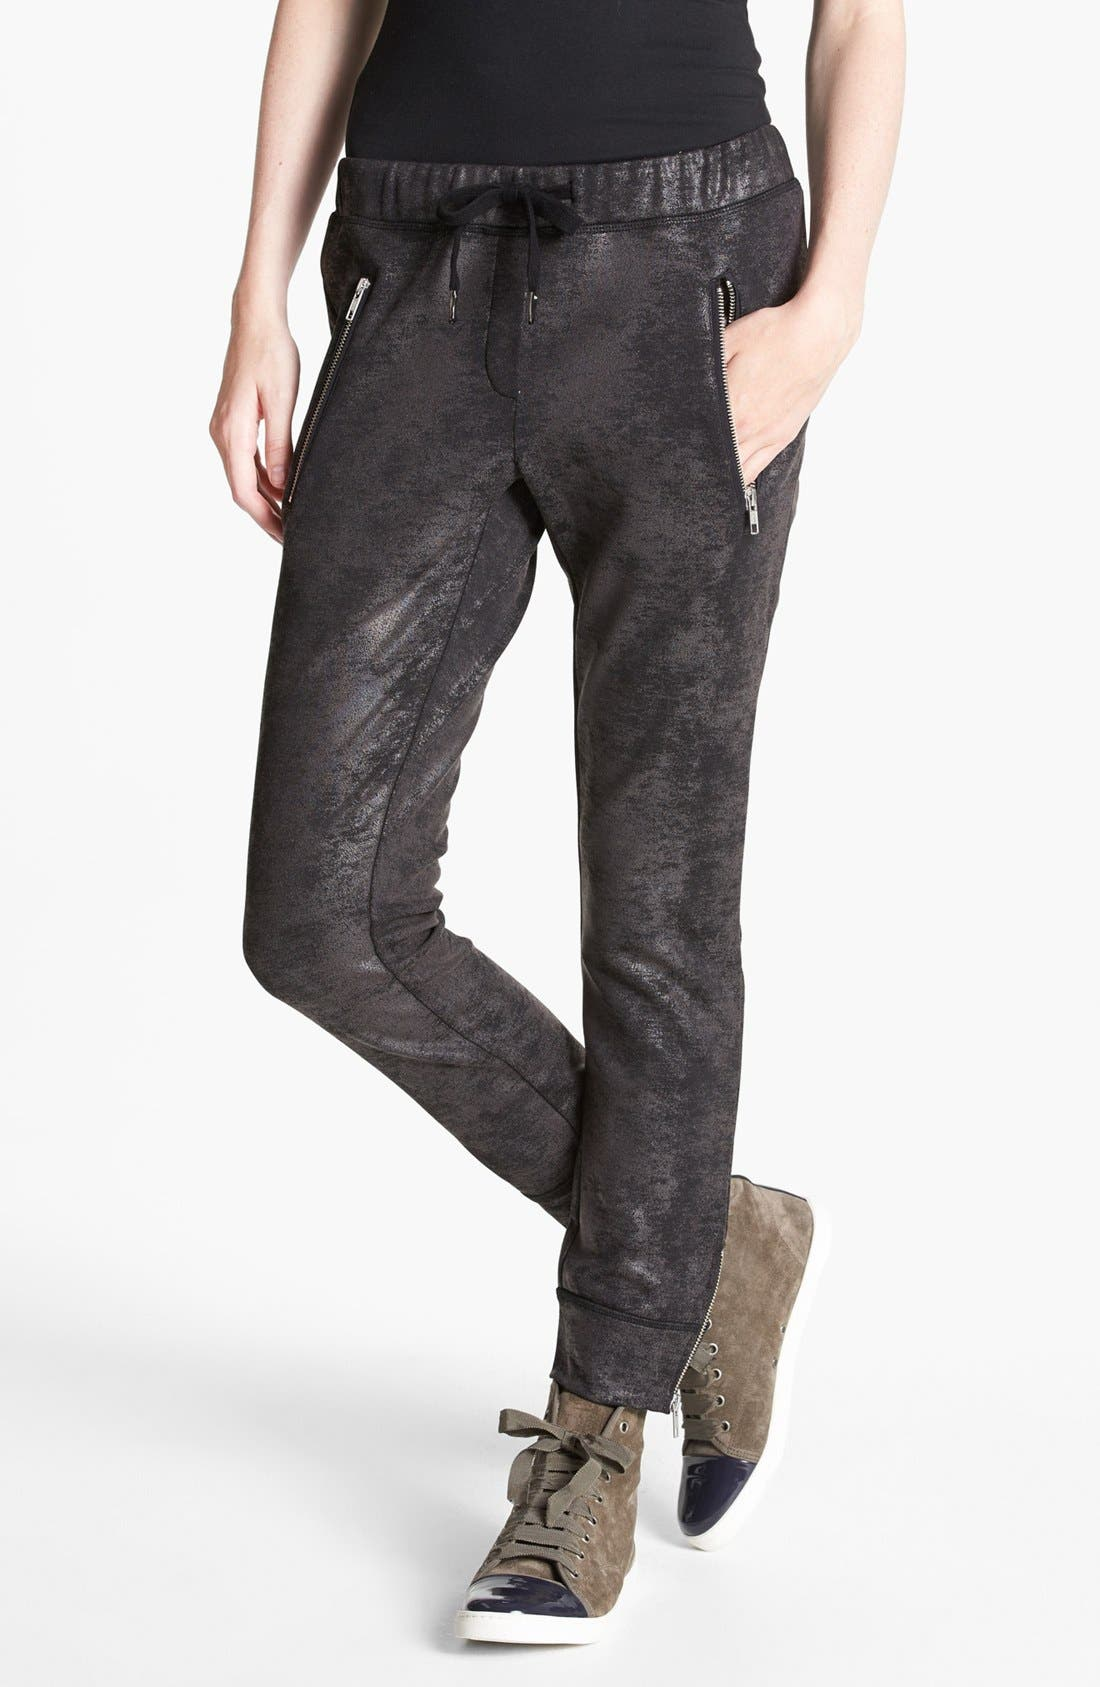 Alternate Image 1 Selected - The Kooples 'Oil Slick' Print Sweatpants